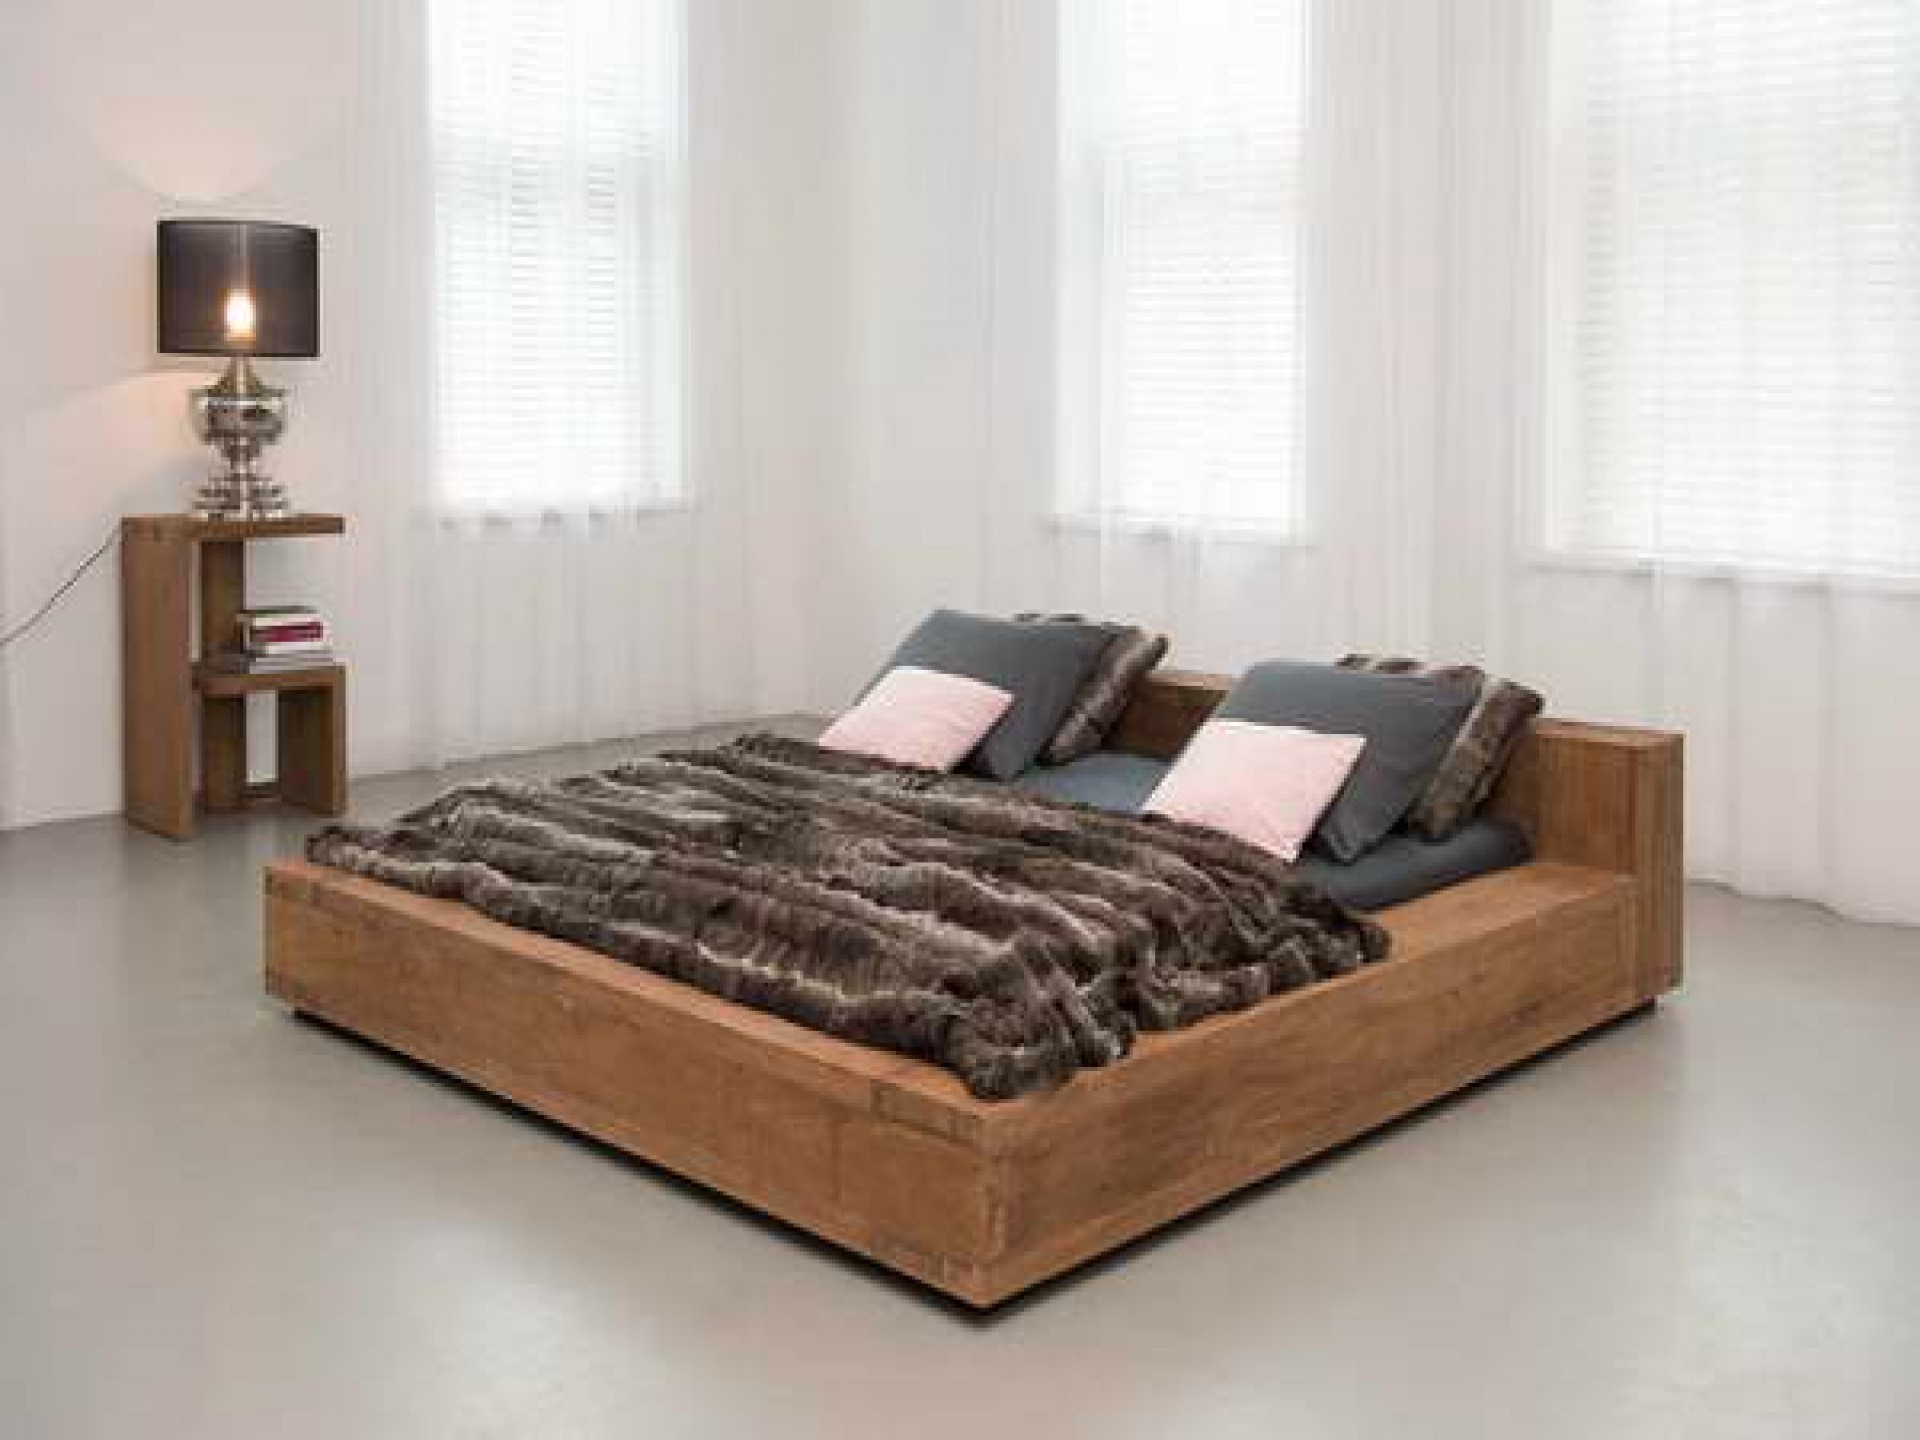 stunning ideas low to the ground bed. bedroom low profile wood fur blanket bed frame candle light shader curtain Low Profile Bed Frame Queen  HomesFeed